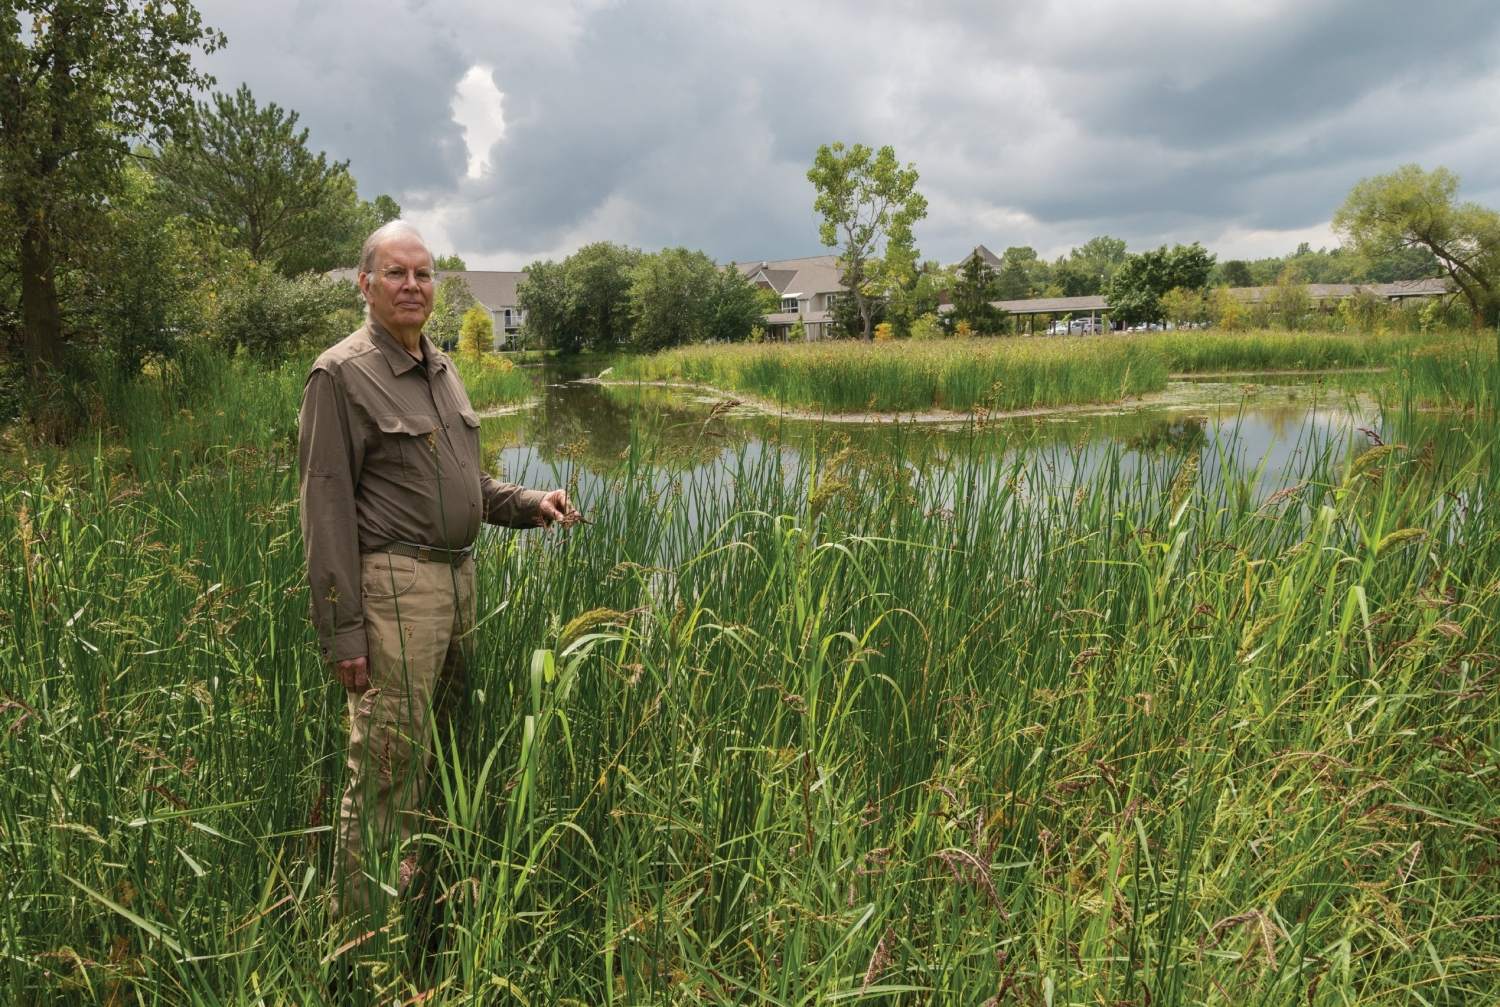 Great Outdoors: Dr. Alan Lockwood  seen near his home in Oberlin, Ohio, believes doctors have a duty to advocate for solutions to climate change. Photo credit: Linda Grashoff